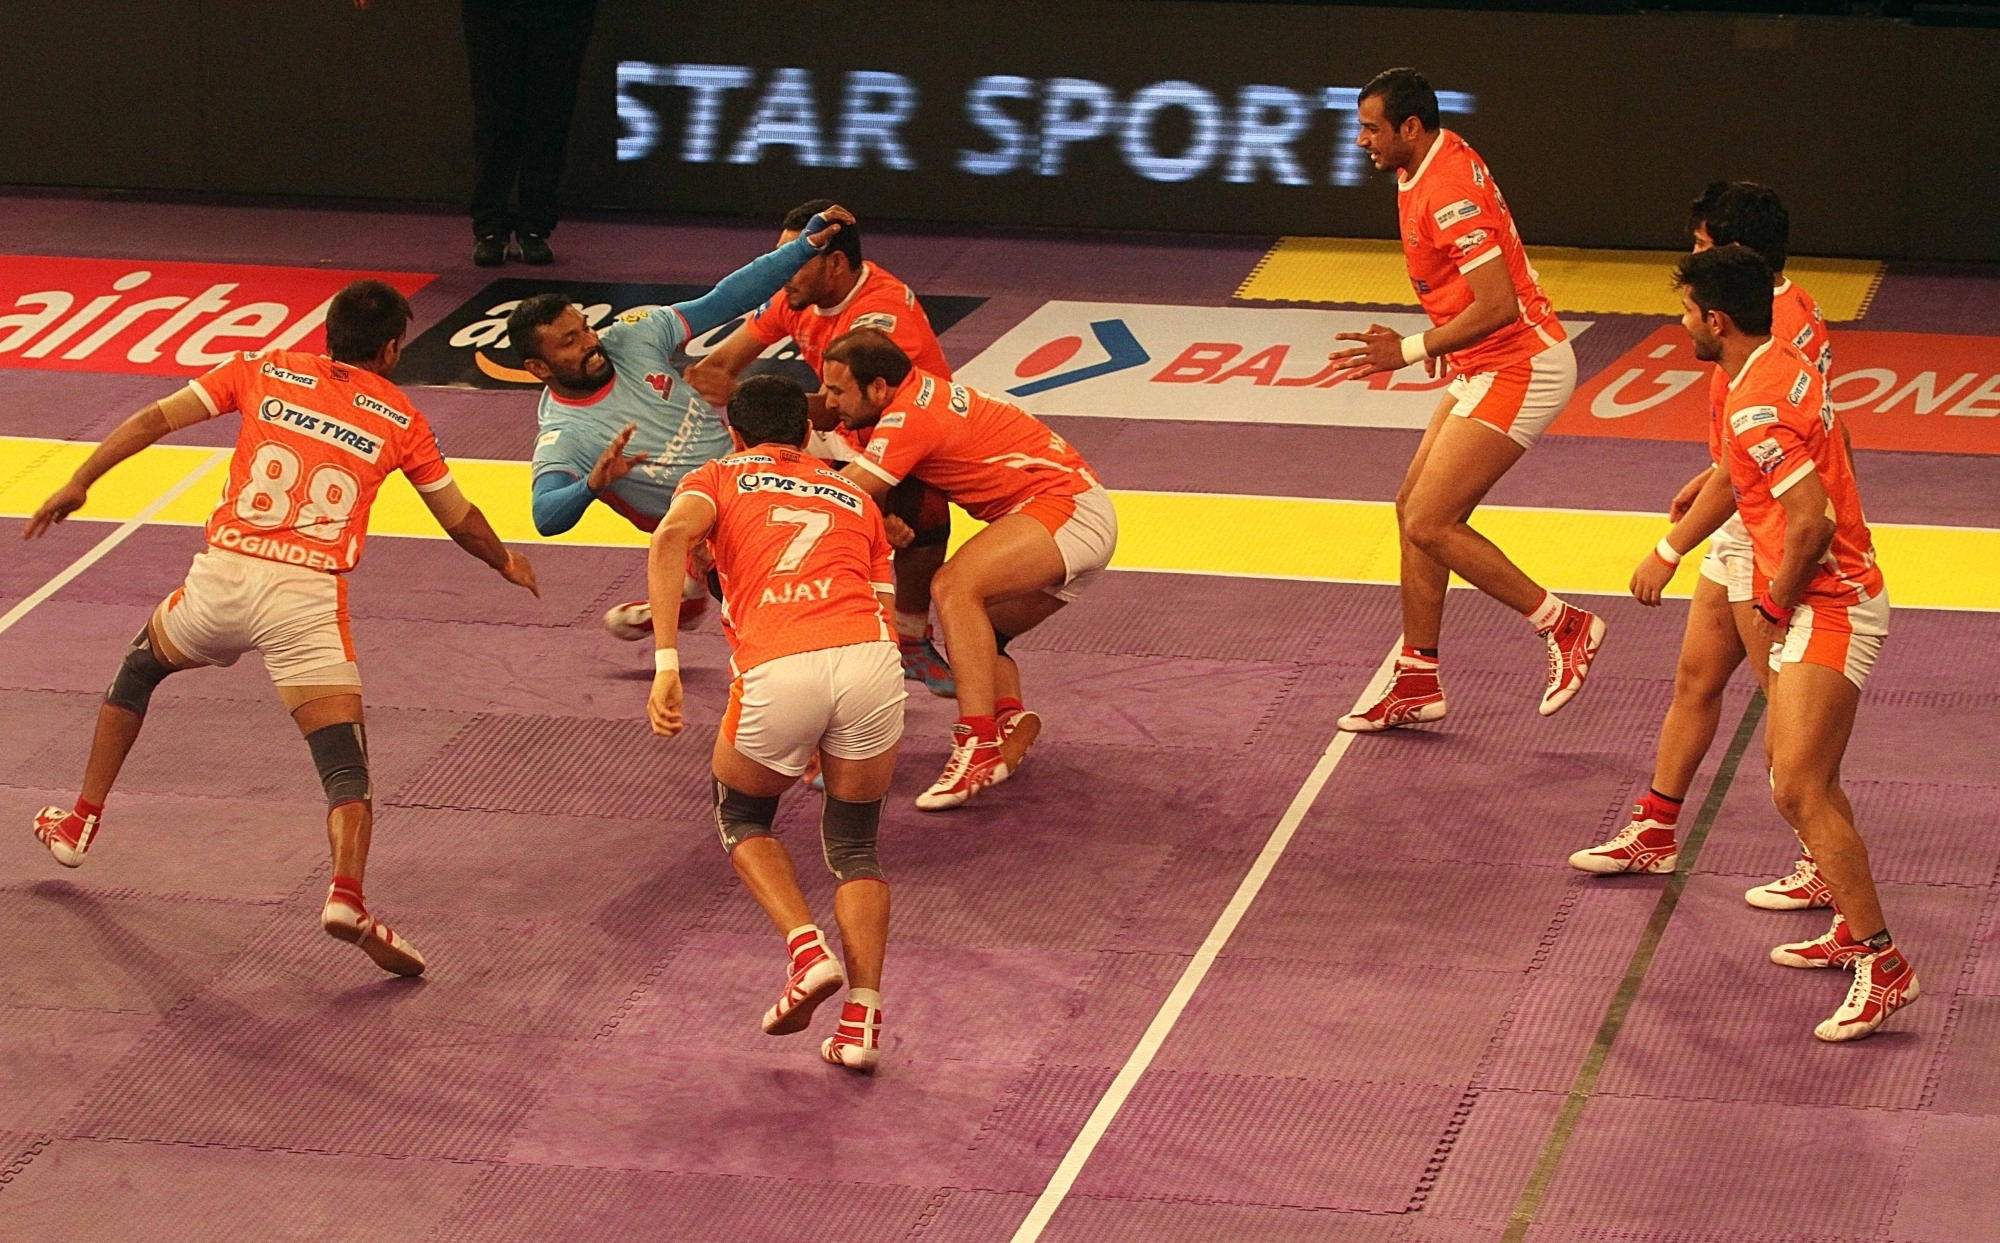 Pro Kabaddi has become the second most popular sports league in India after IPL (Image: IANS)